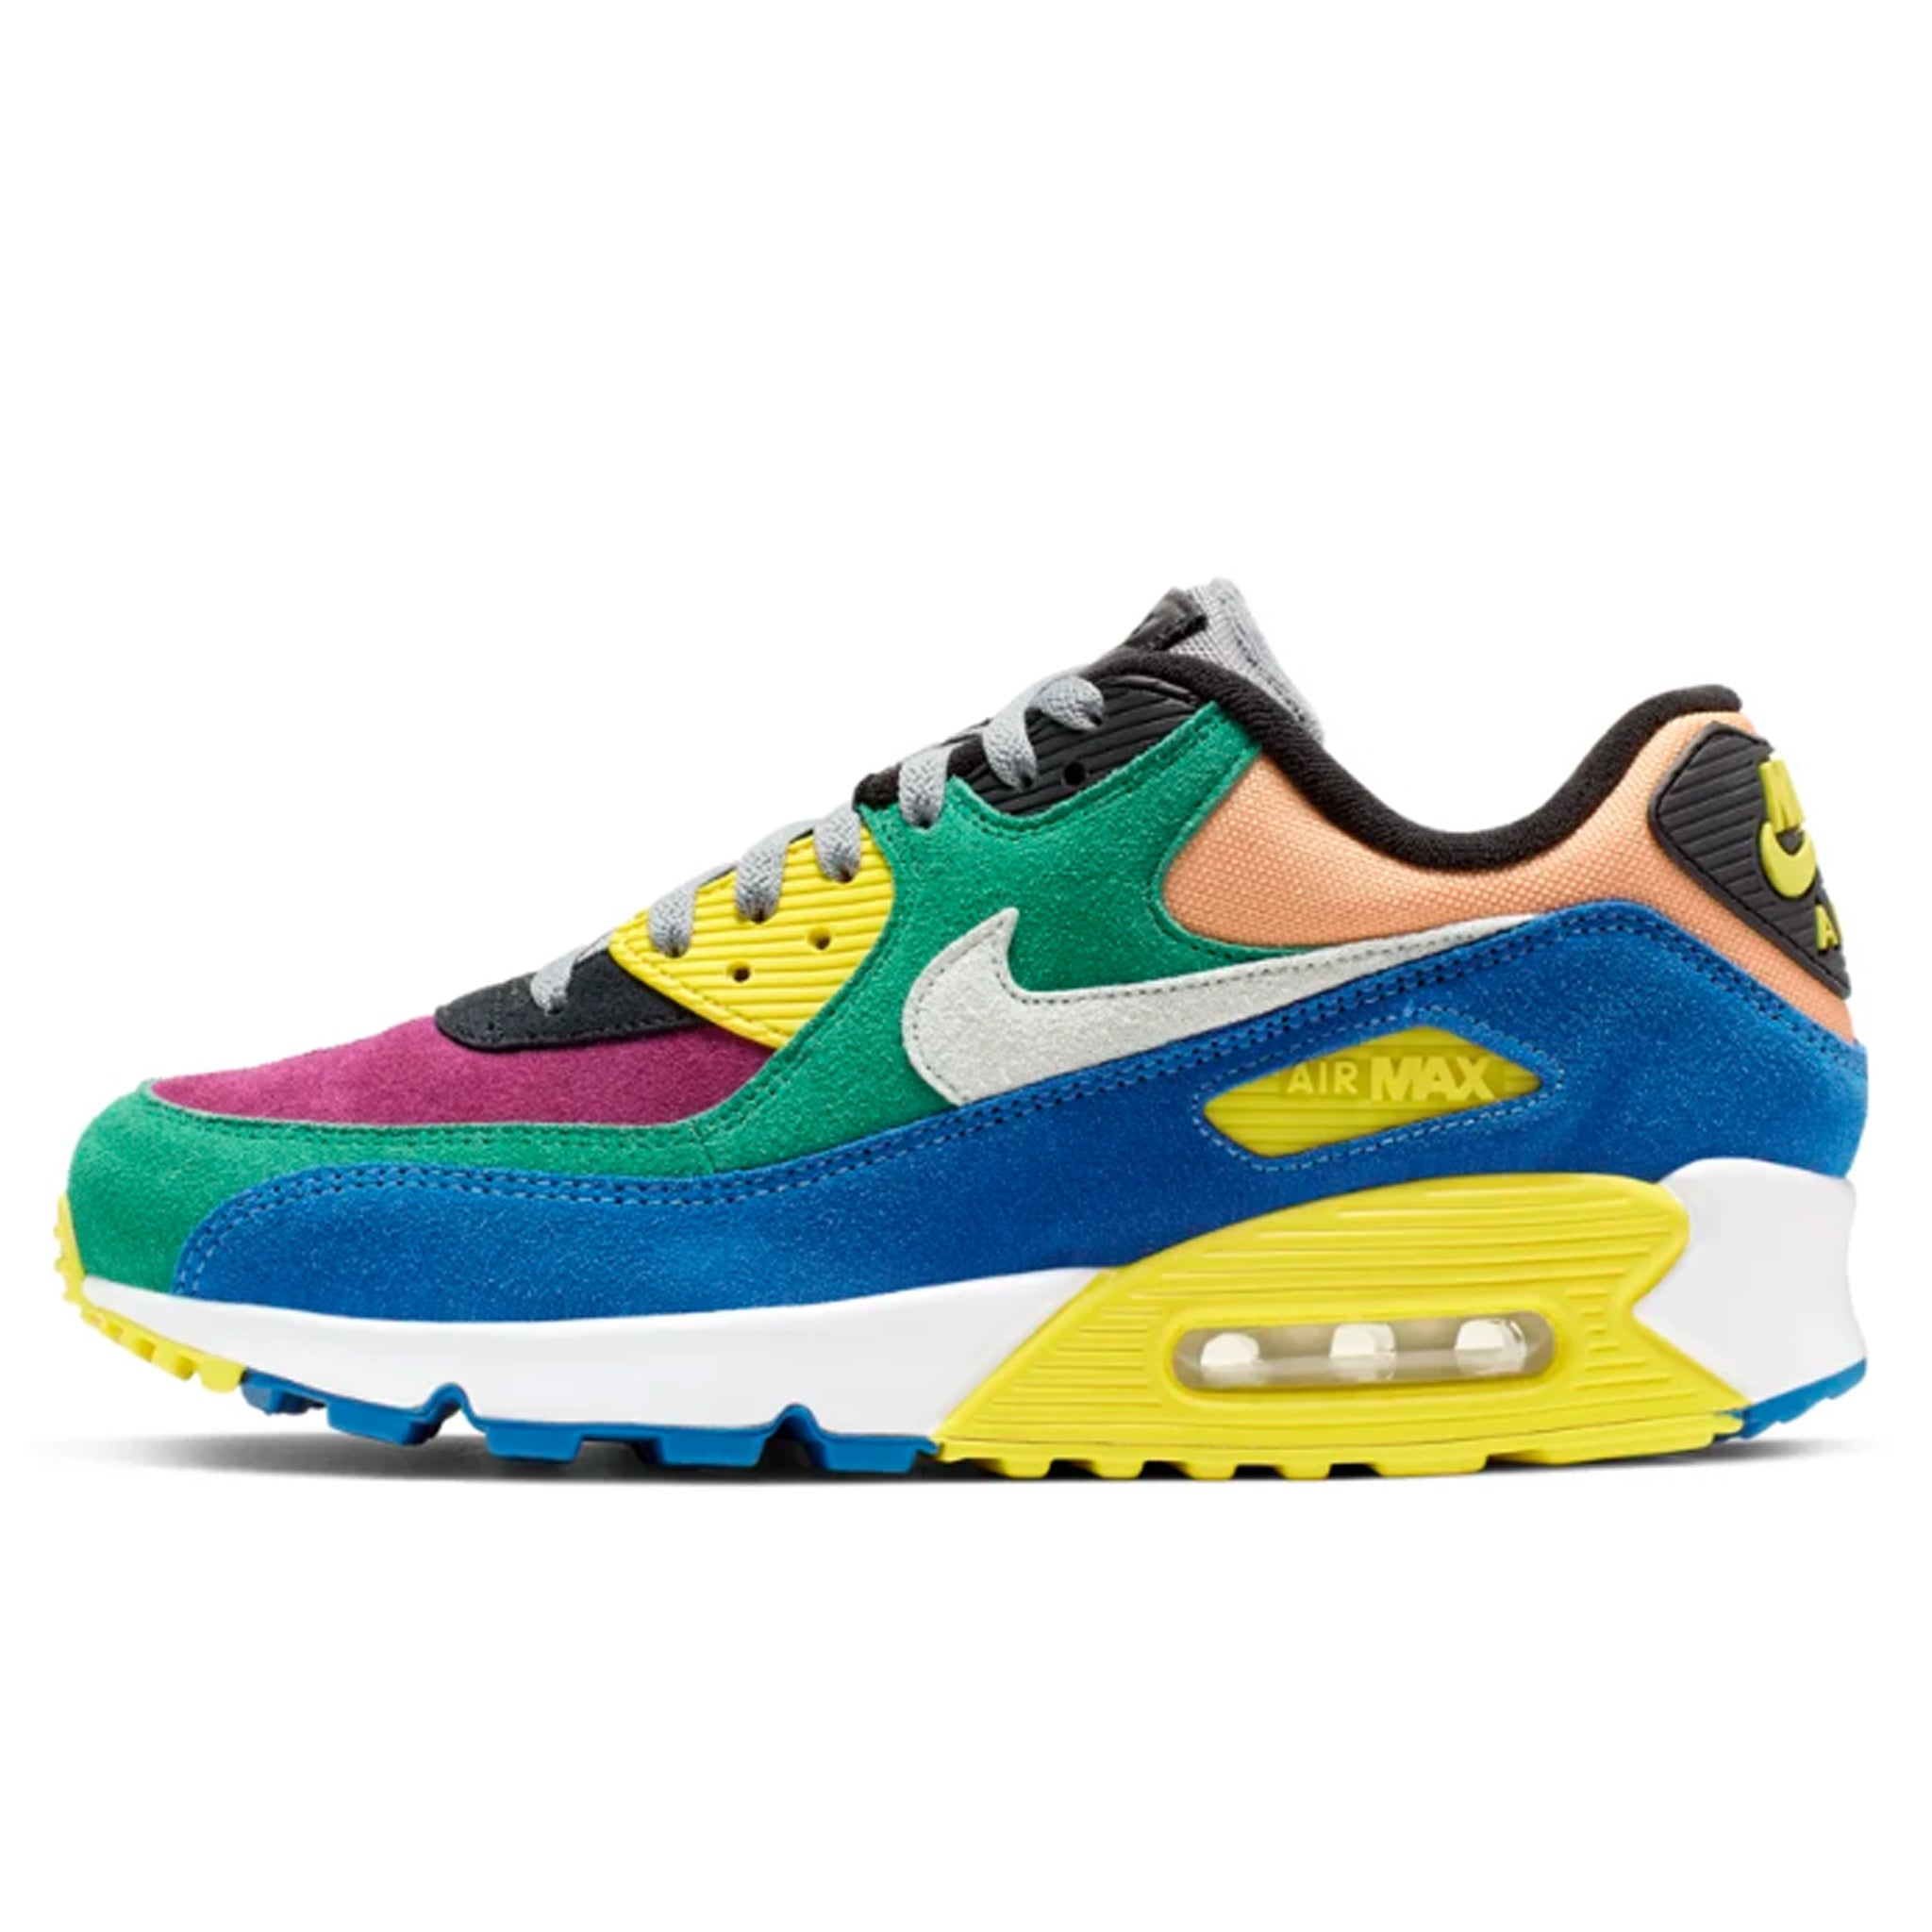 CD0917 300] Nike Air Max 90 QS Viotech 2.0 (Lucid Green